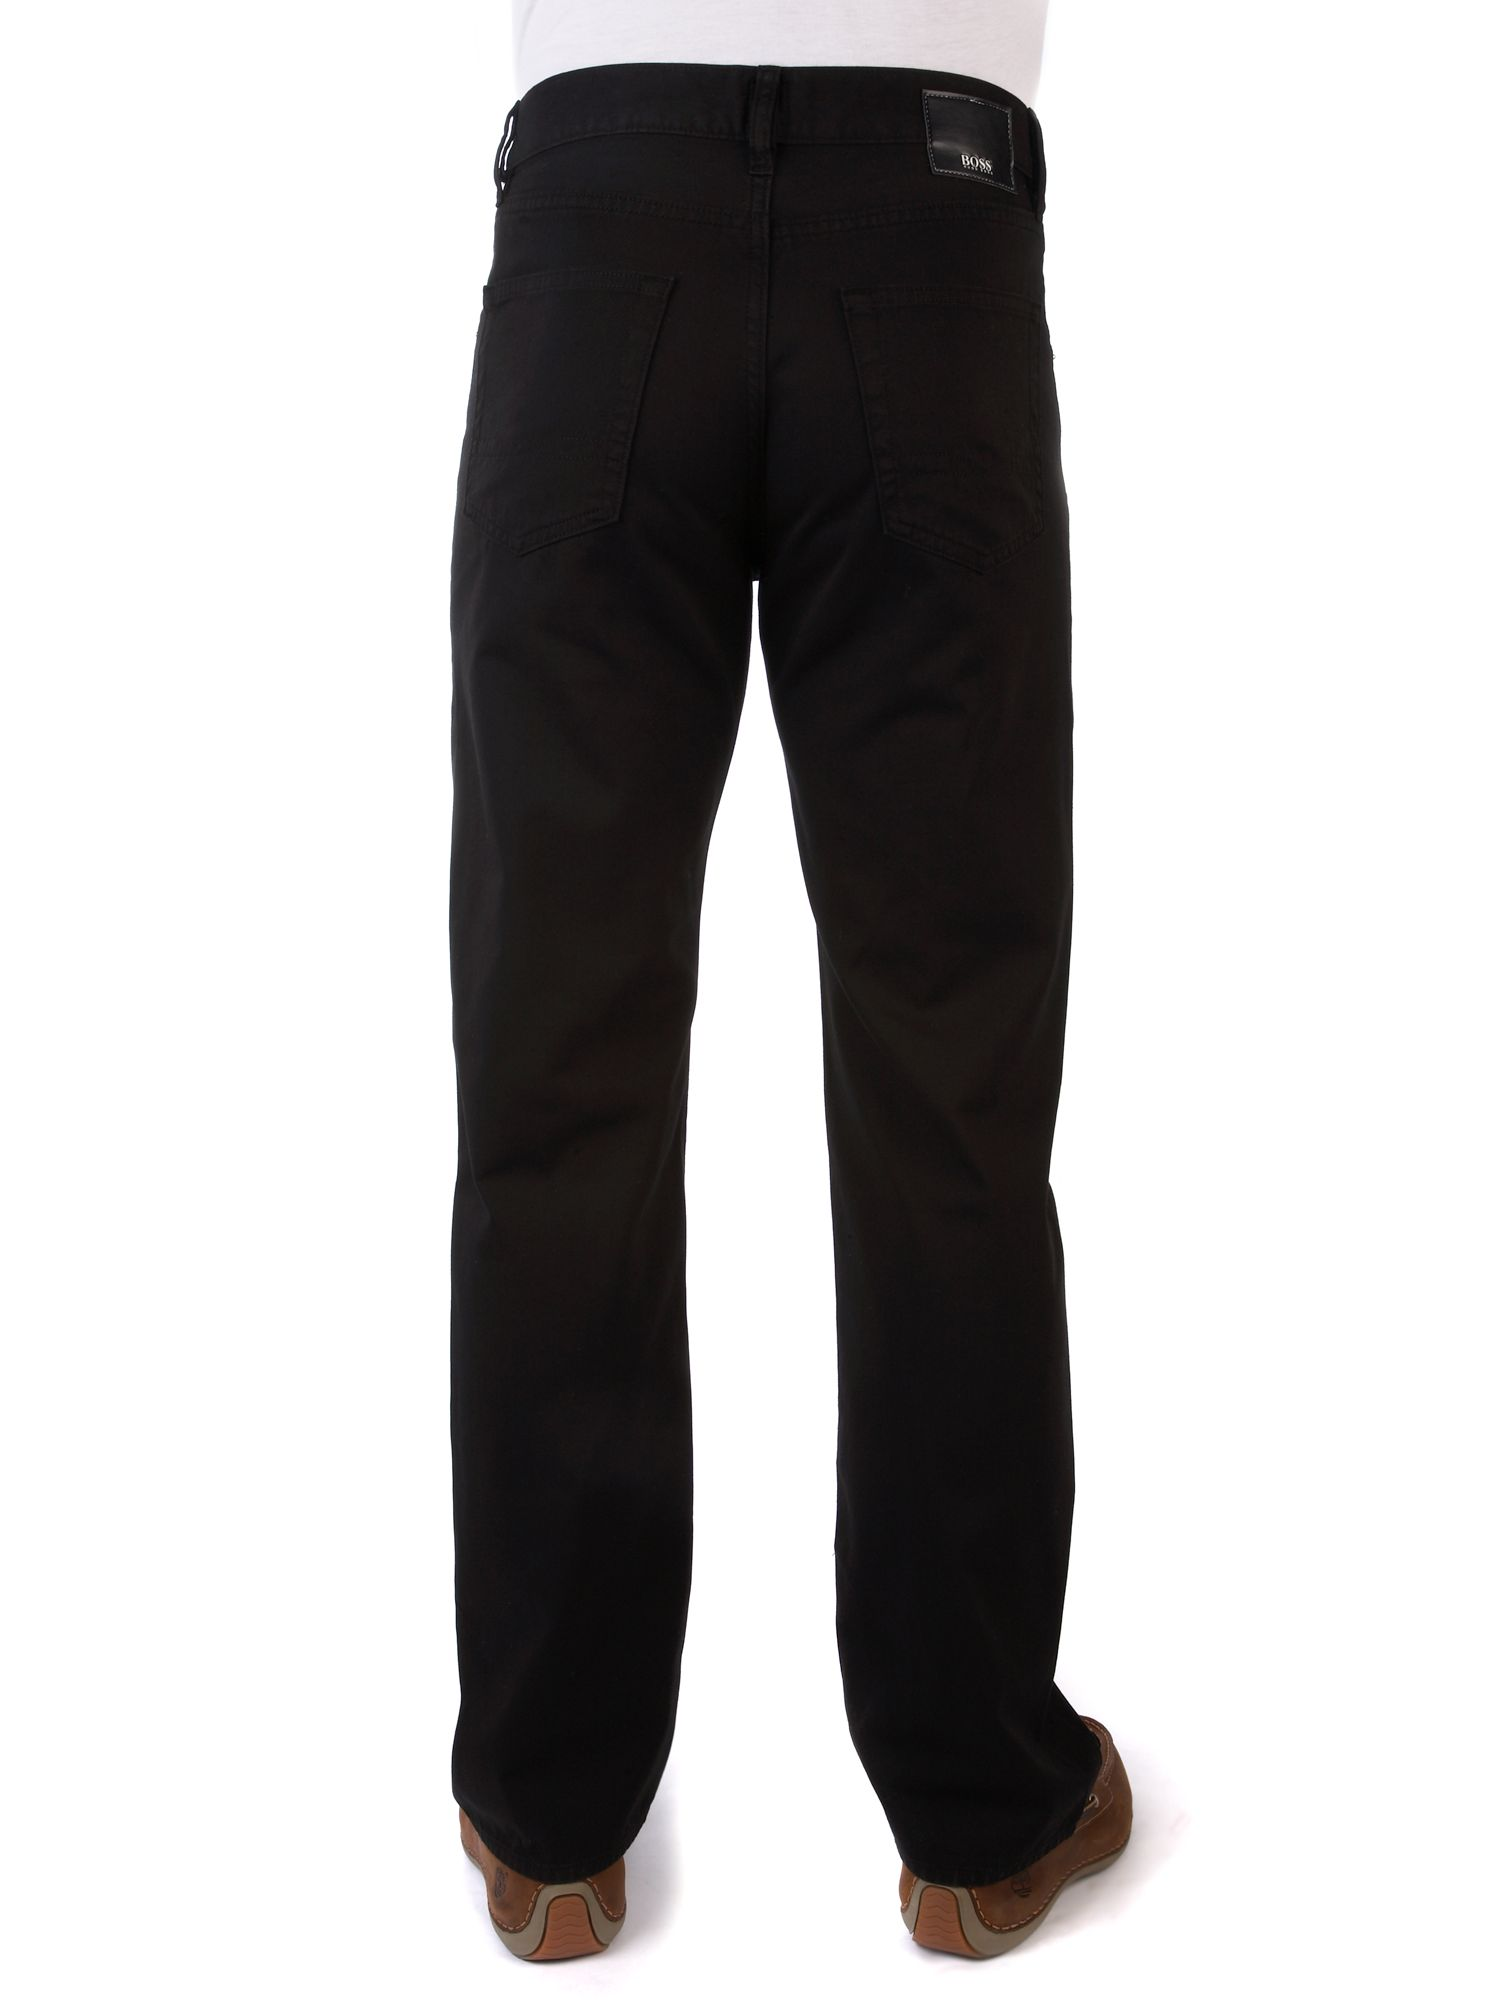 Five pocket flat front trousers